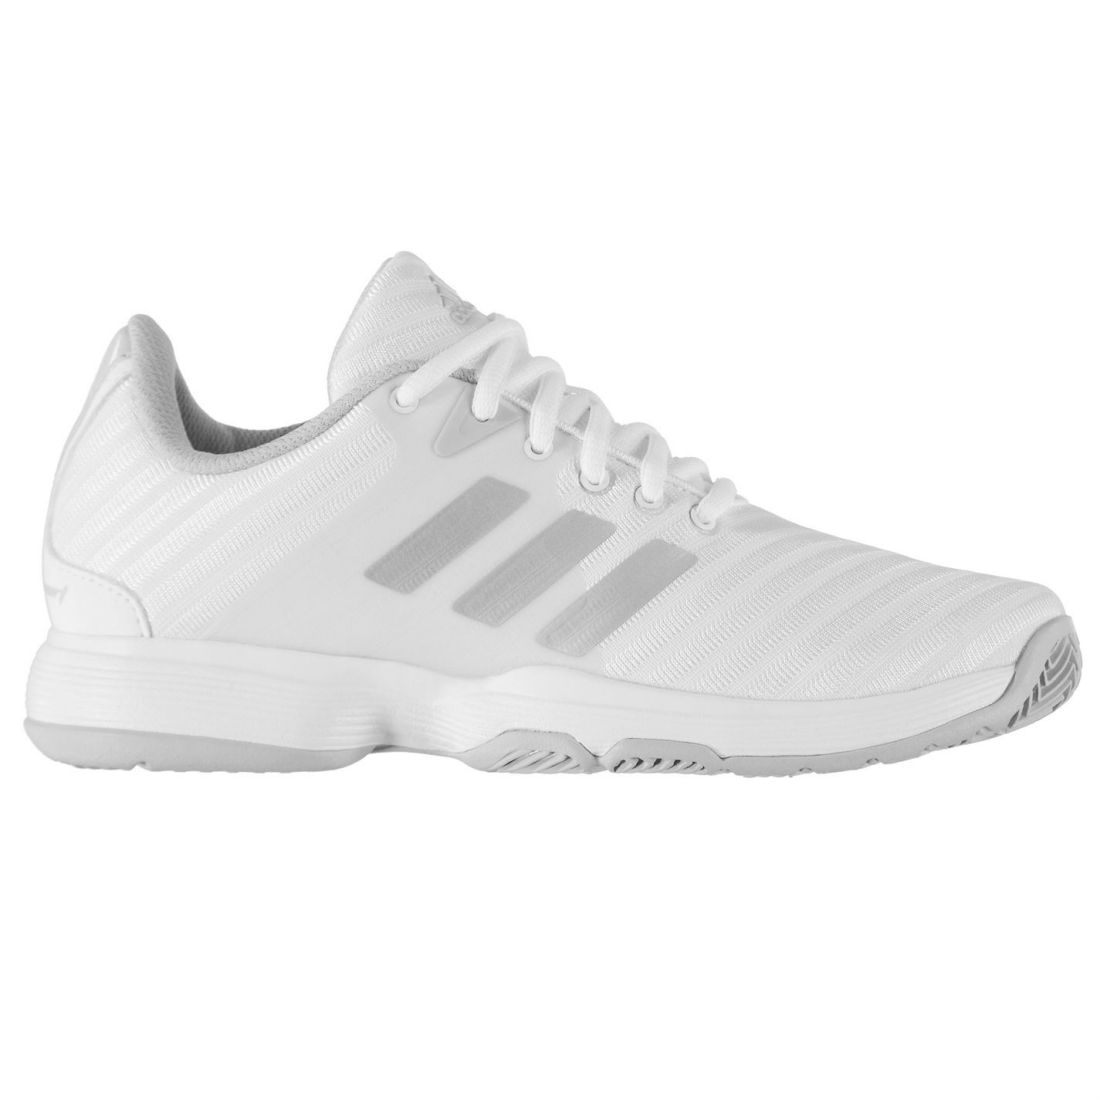 65eebc00d ADIDAS BARRICADE COURT Shoes Ladies Tennis Laces Fastened Ventilated ...